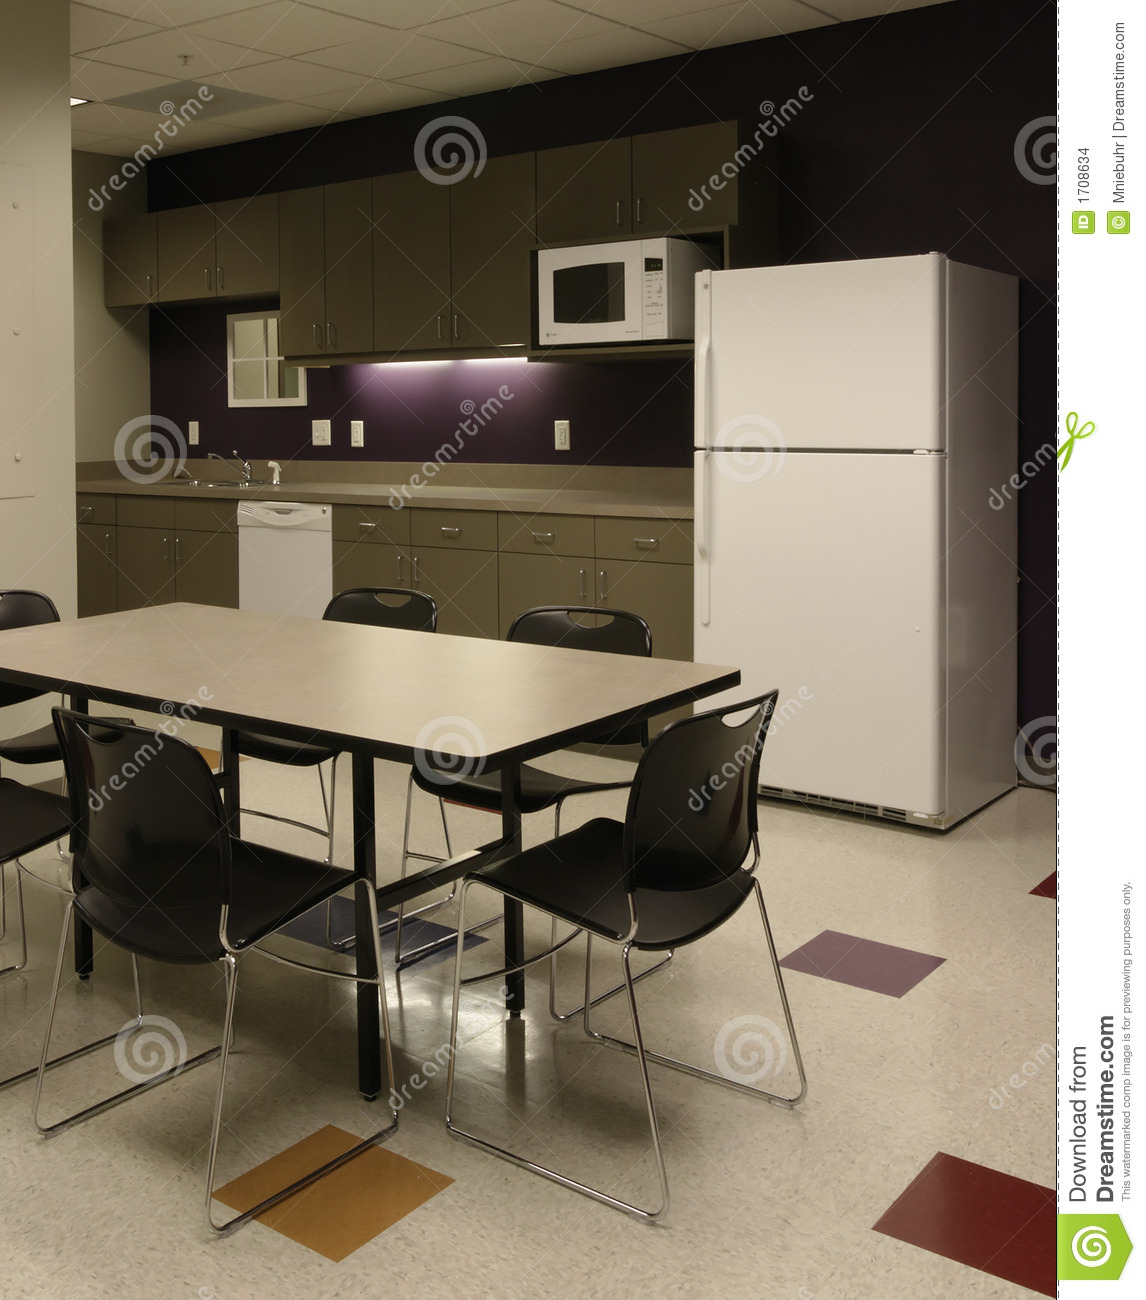 Office Break Room Cafe - Employee Kitchen Space Stock Images - Image ...